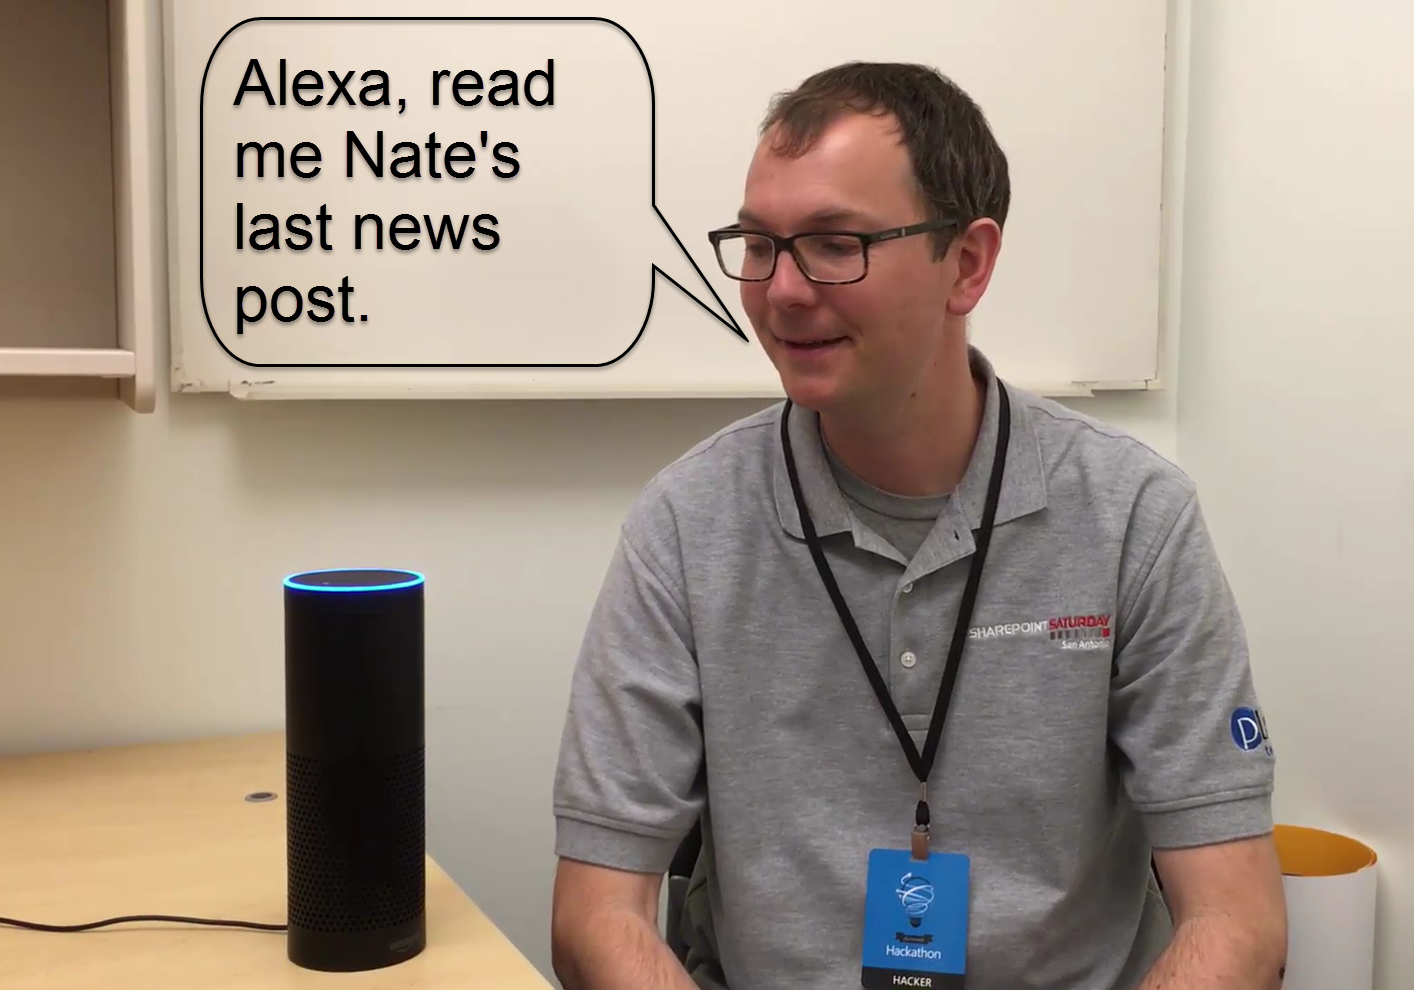 A Conversation with Alexa about SharePoint – Tom Resing's